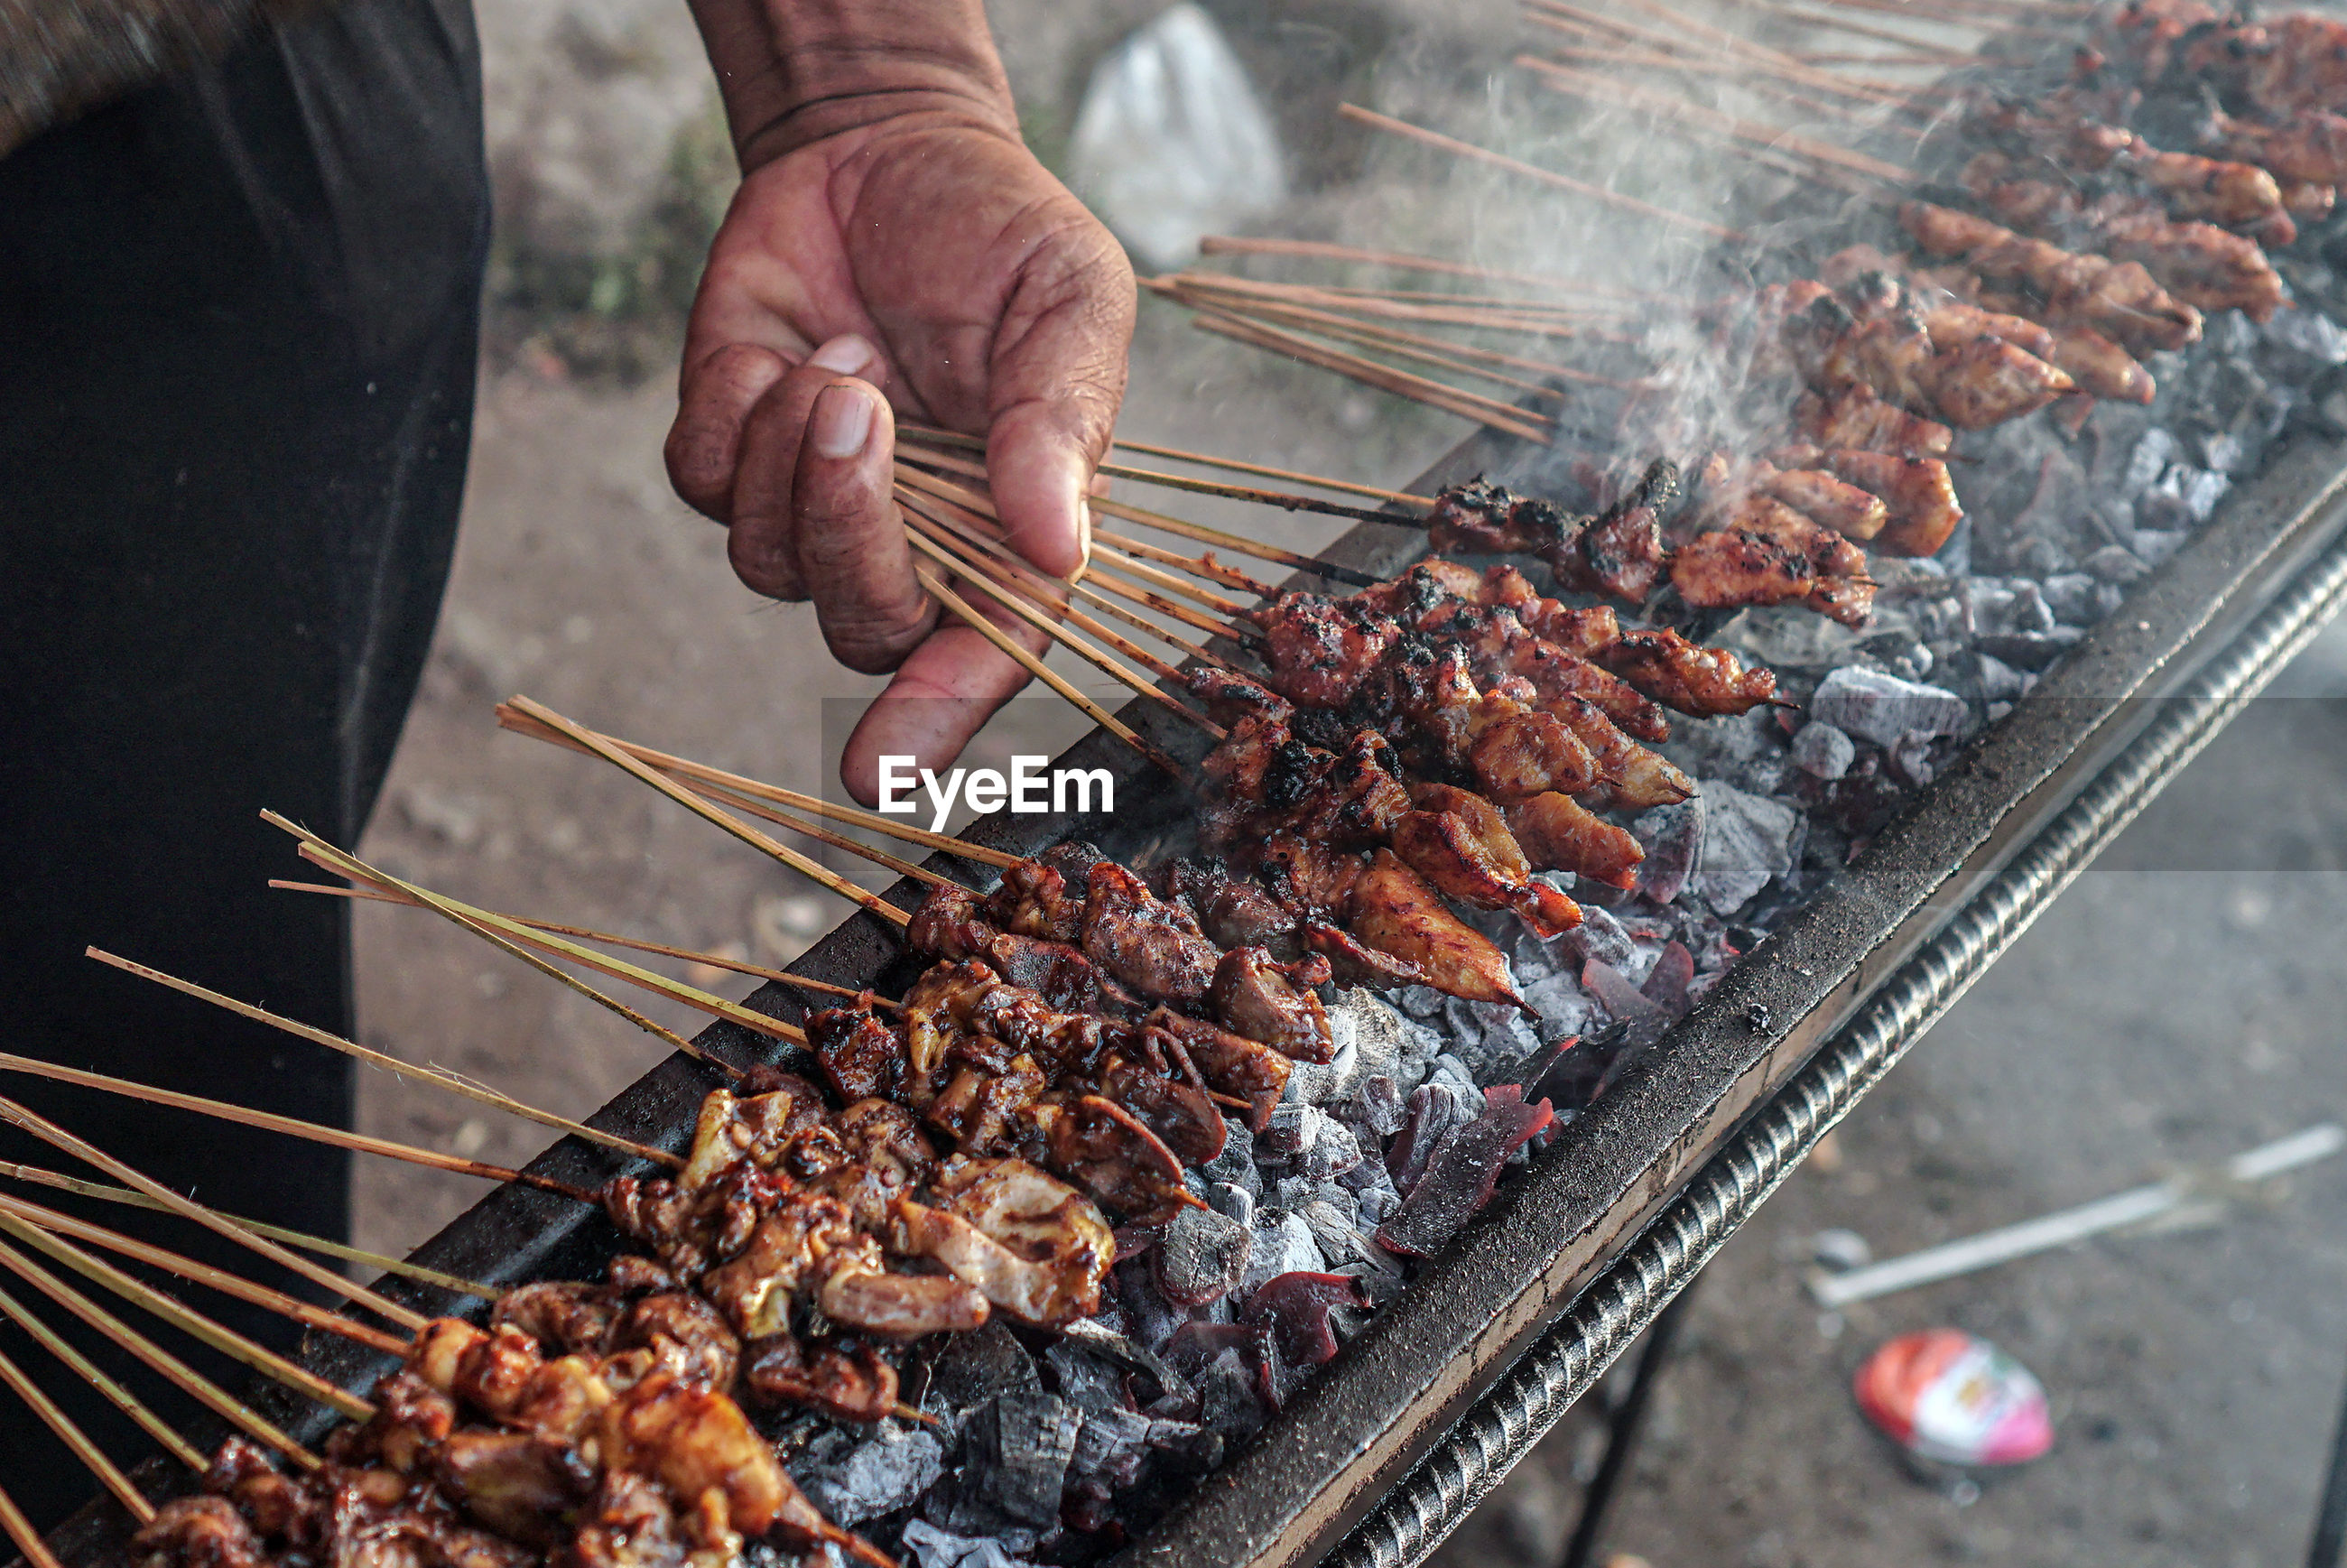 MIDSECTION OF MAN PREPARING FOOD ON BARBECUE